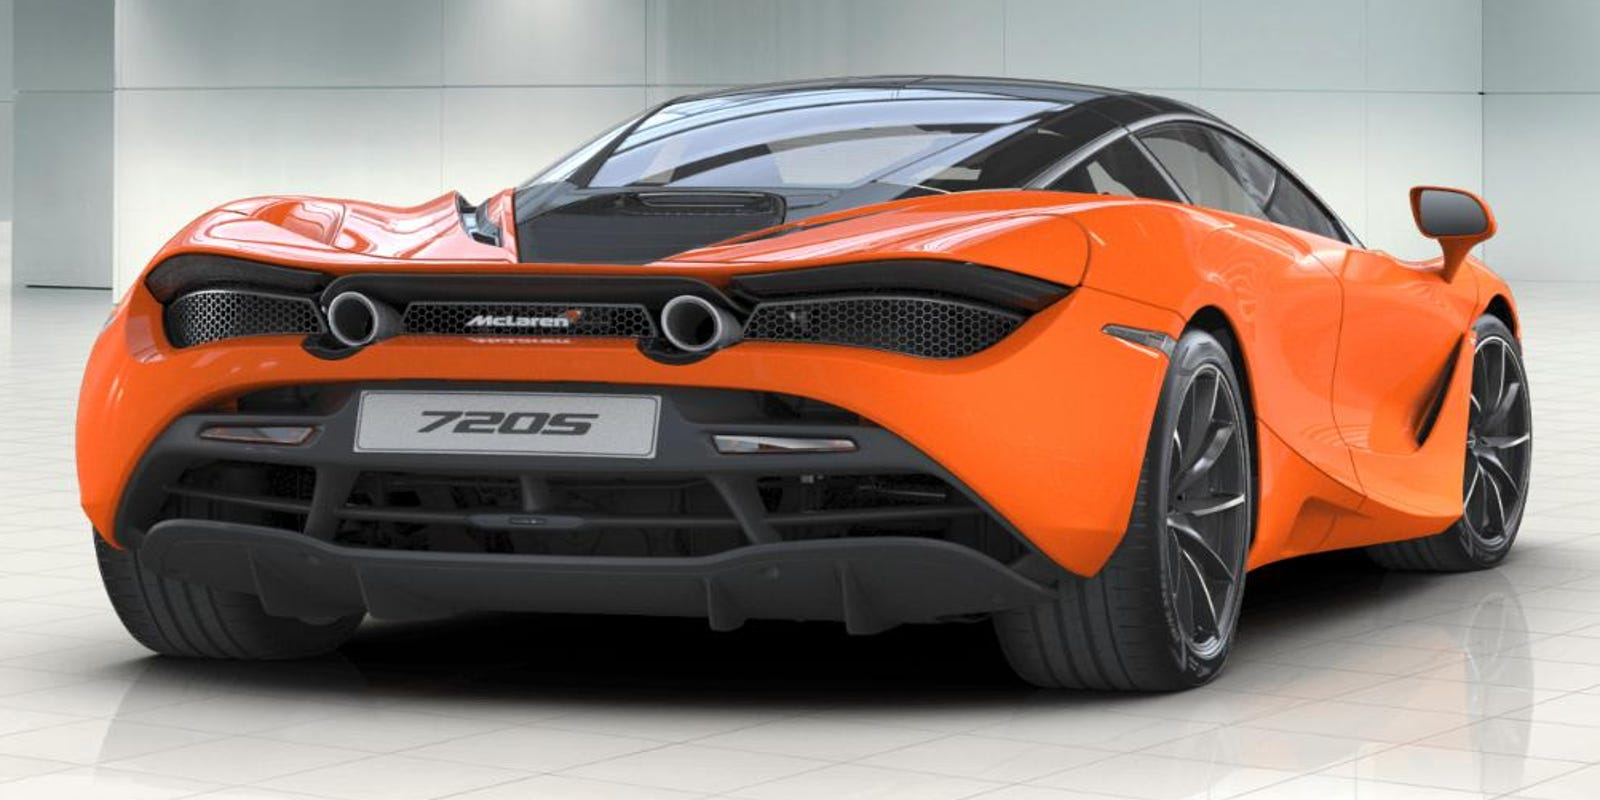 mclaren 720s review how d they make it street legal